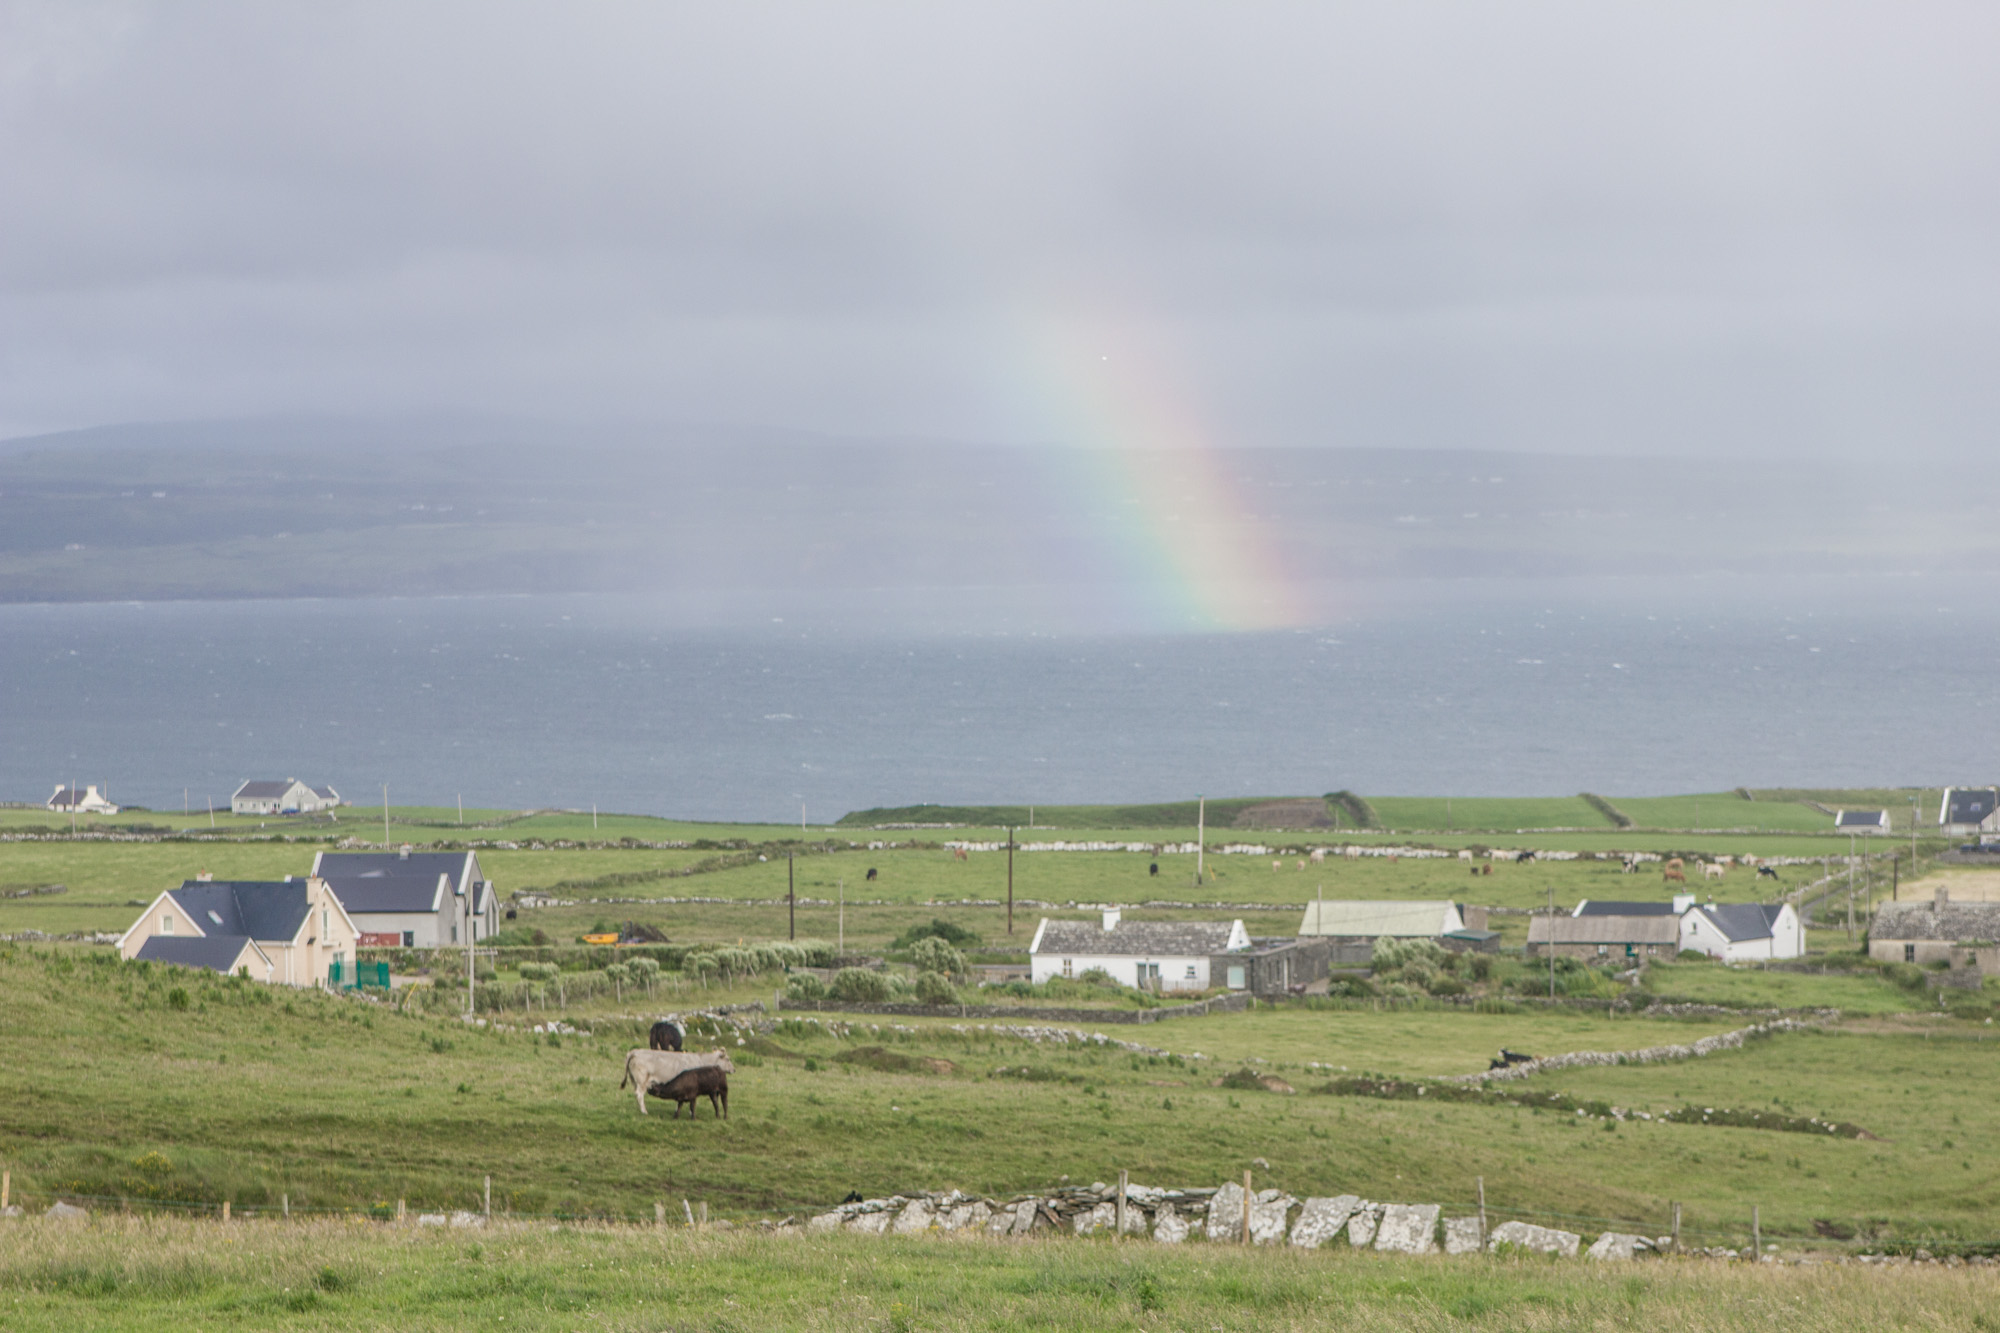 Rainbow in the countryside in Ireland, above green fields, white houses, and sheep